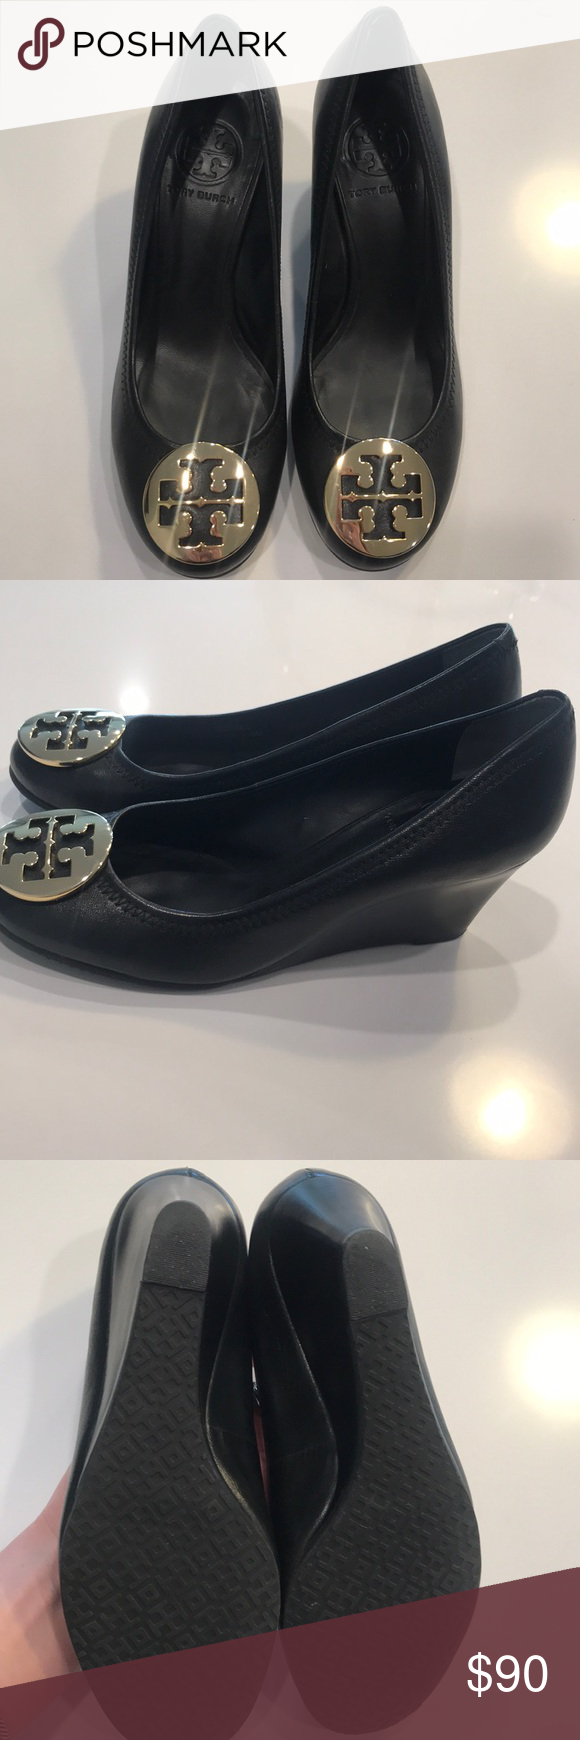 "Tory Burch Closed Toe ""Sally"" Wedges"